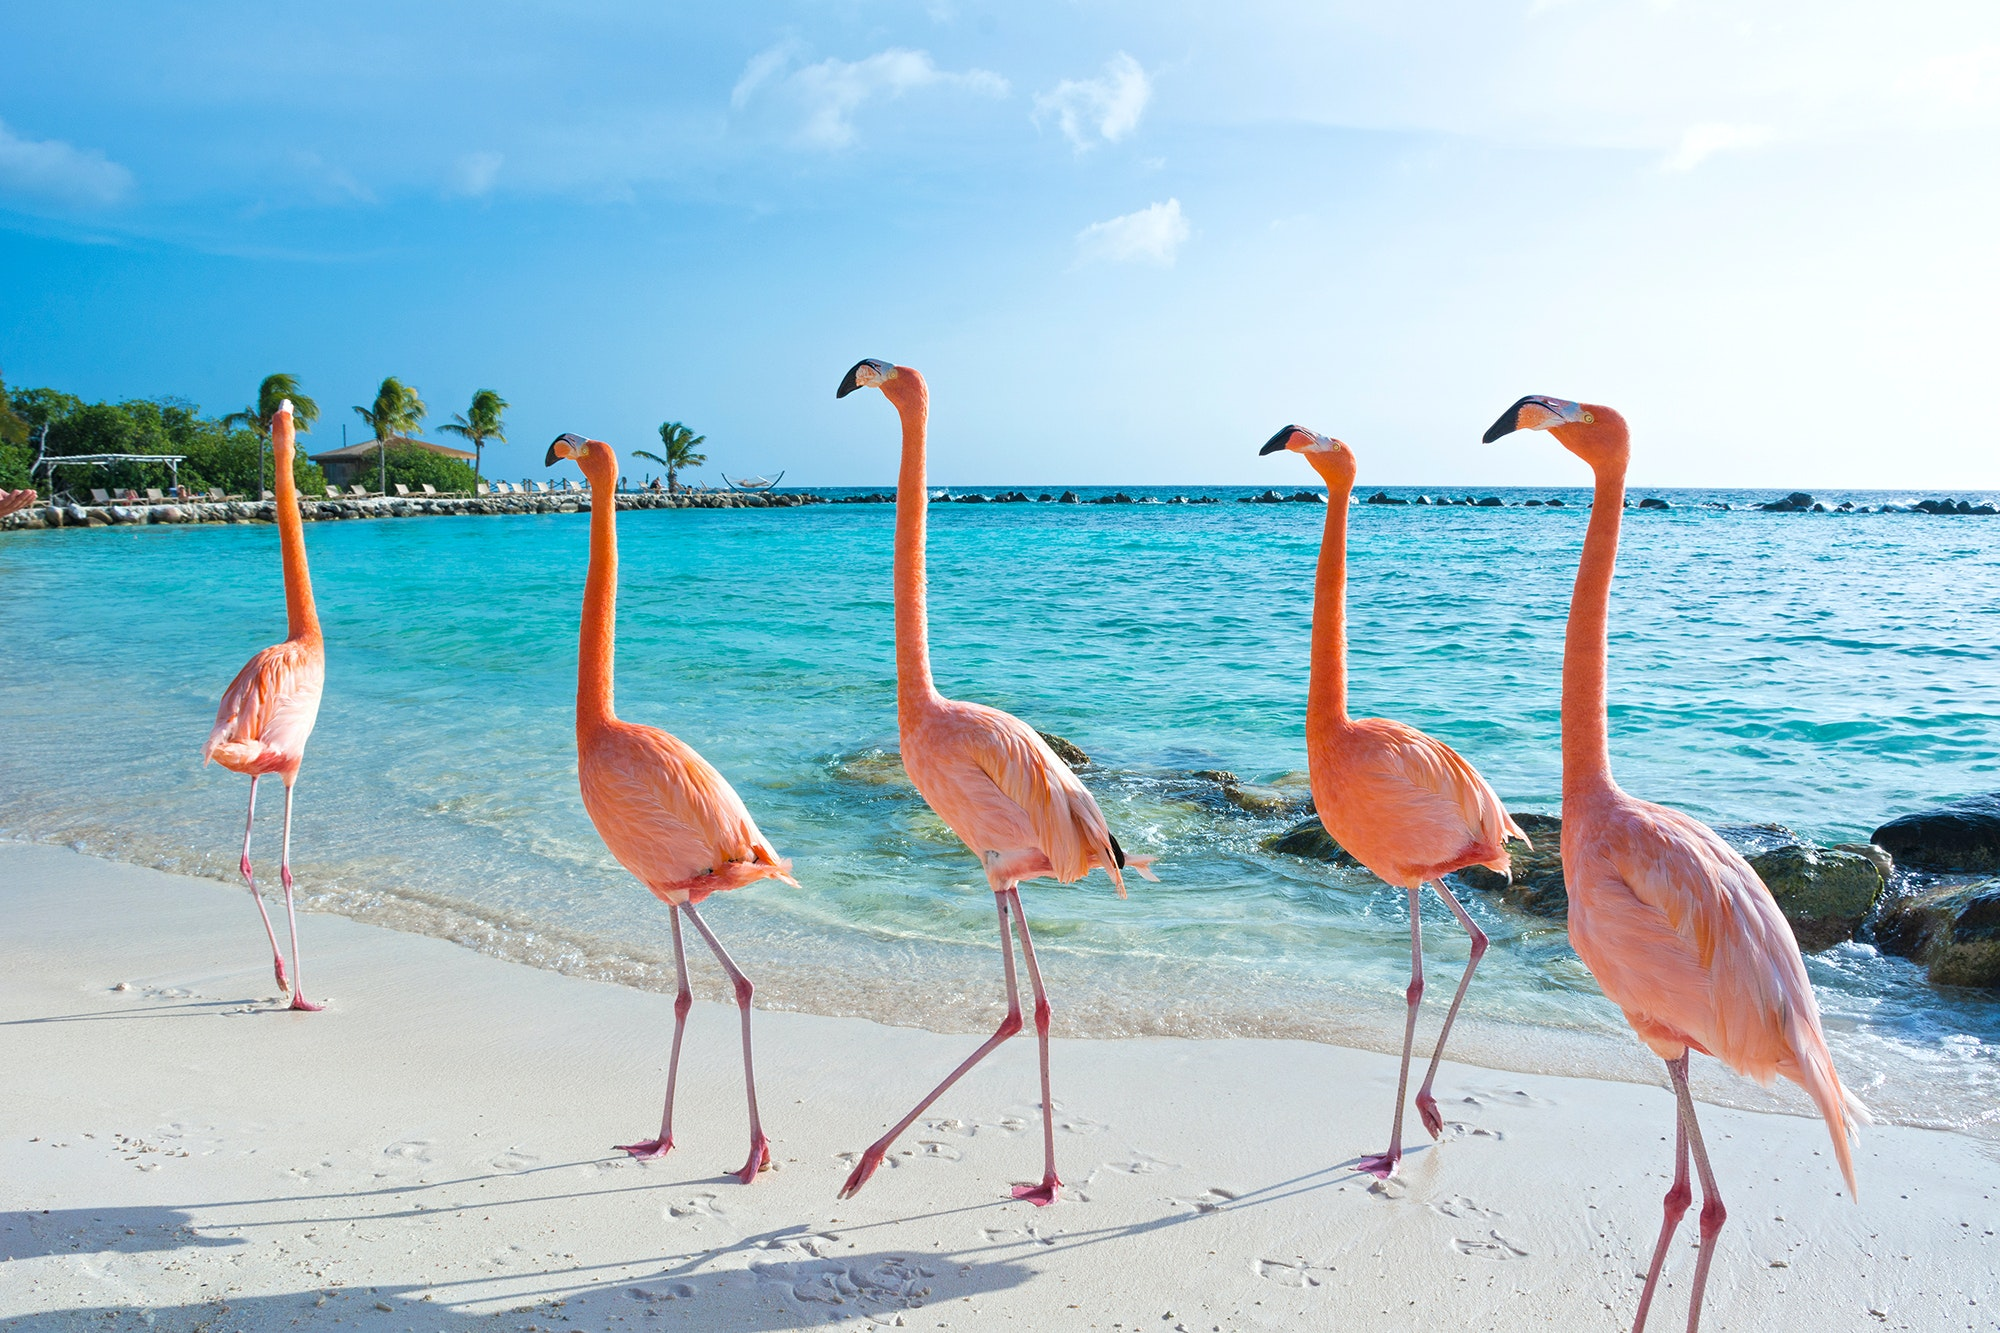 If you live in the Midwest or South, getting to Aruba—and its famous pink flamingos—will be much easier this winter.